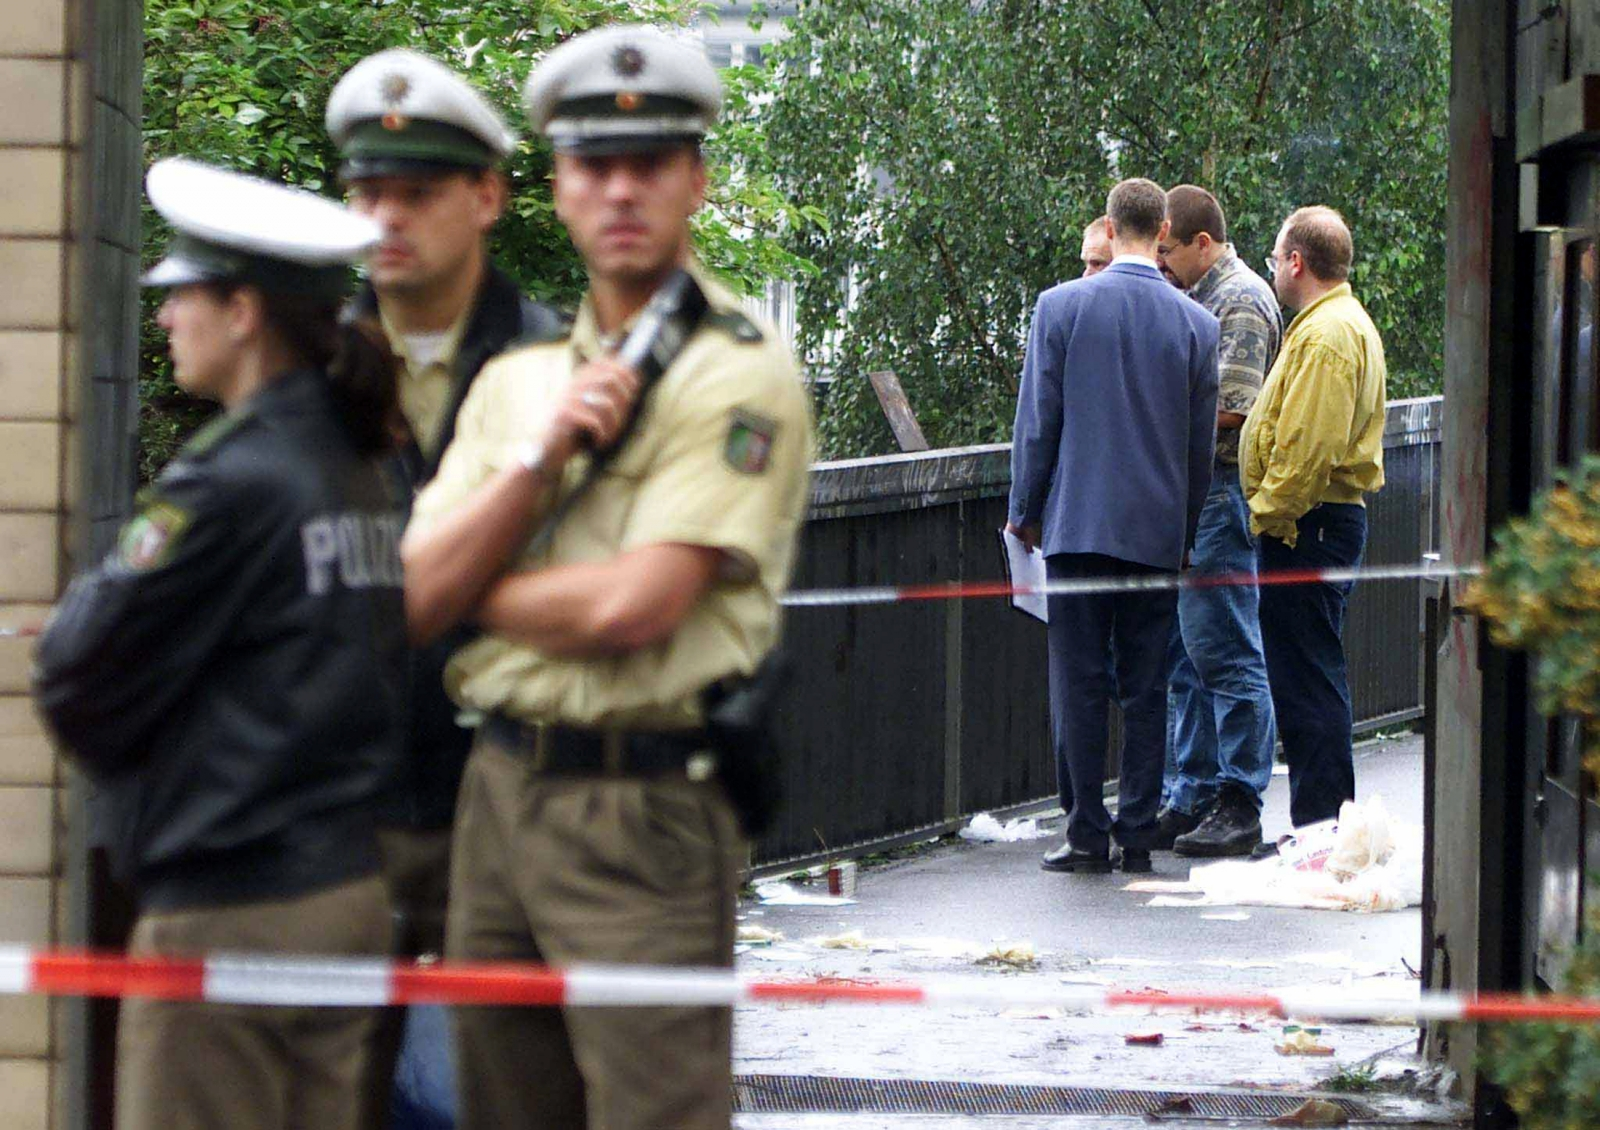 Police investigates at the scene of crime after a bomb blast at a city train station in the center of Duesseldorf, Germany, July 27 2000.